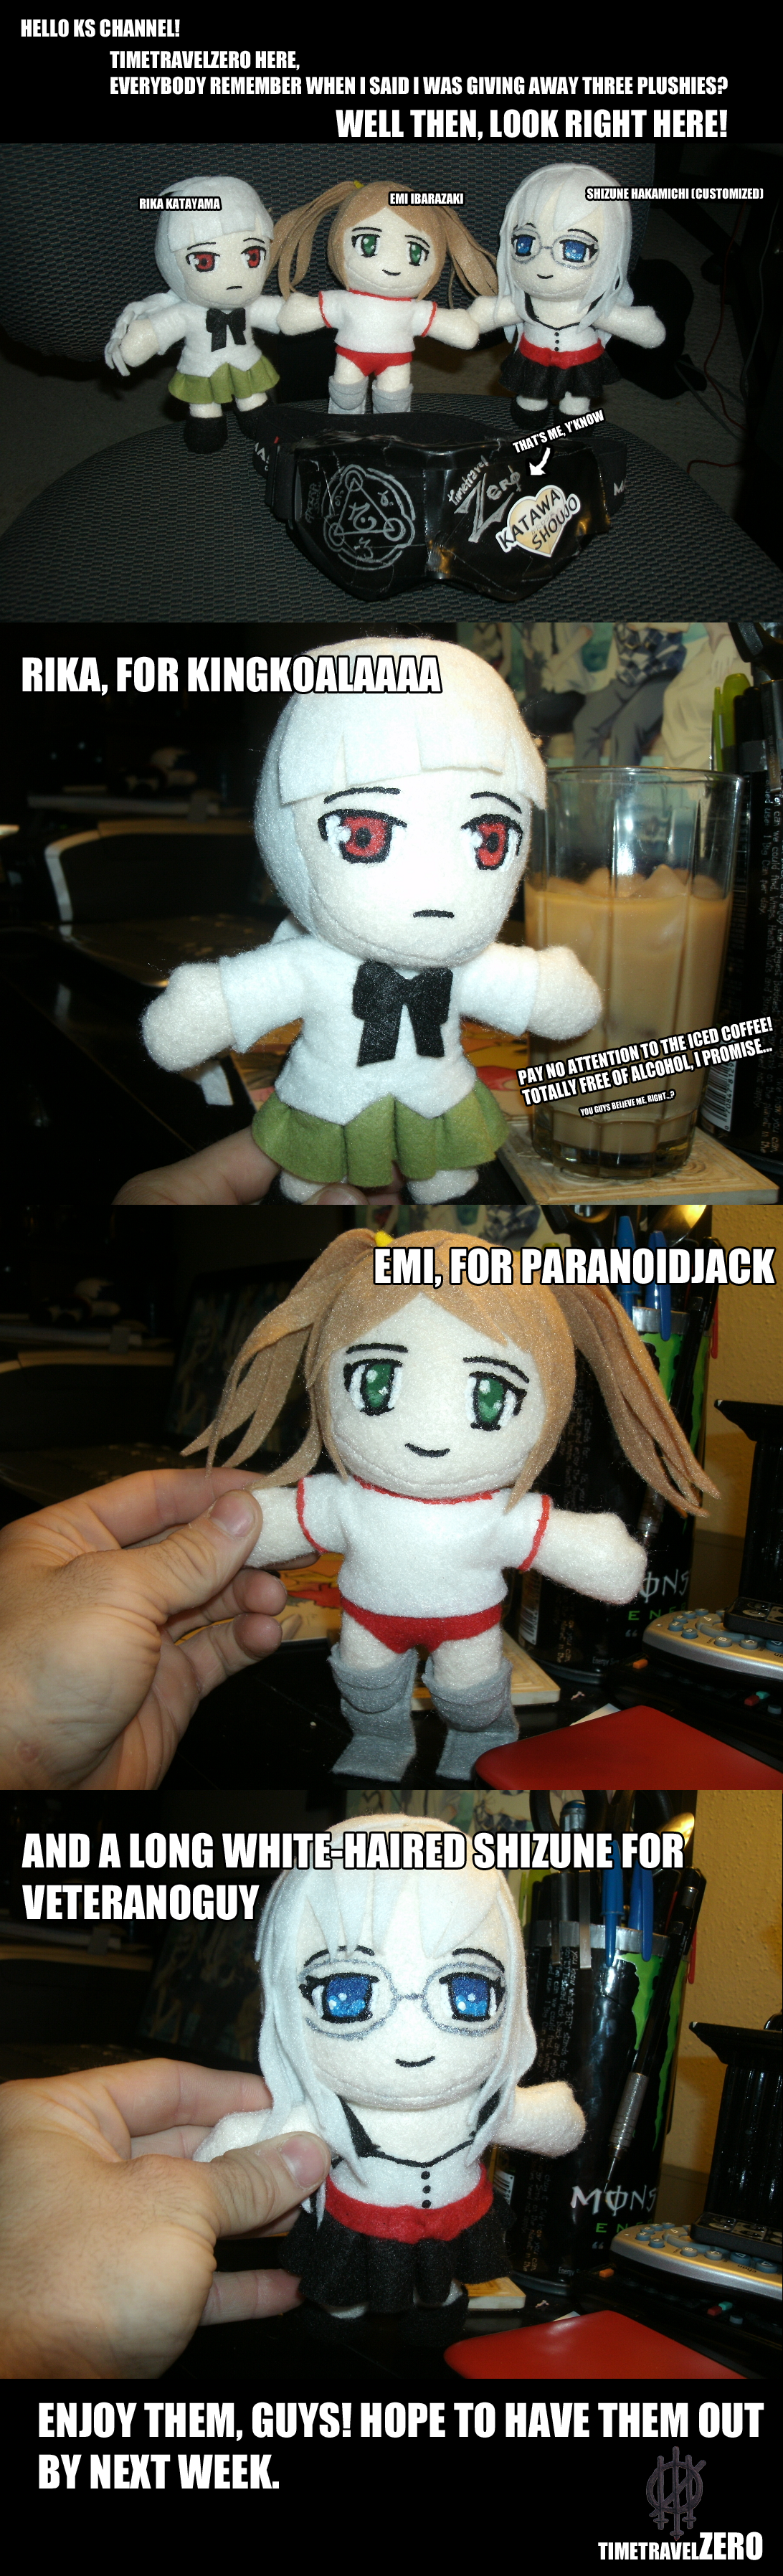 Time delivers... Sort of.. PHASE 1: PHASE 2: AND NOW... It's happening, just a matter of figuring out HOW for one of them. You know who you are. Vodka boy.. GUYS WE NEED A HANAKO PLUSHIE, SO WE CAN UNITE THEM ALL! WITH MY RIN, WE CAN USE OUR 5 PLUSHIES, USE THEIR POWERS, AND CREATE CAPTAIN SHOUBRO, SAVIOR OF THE KAT